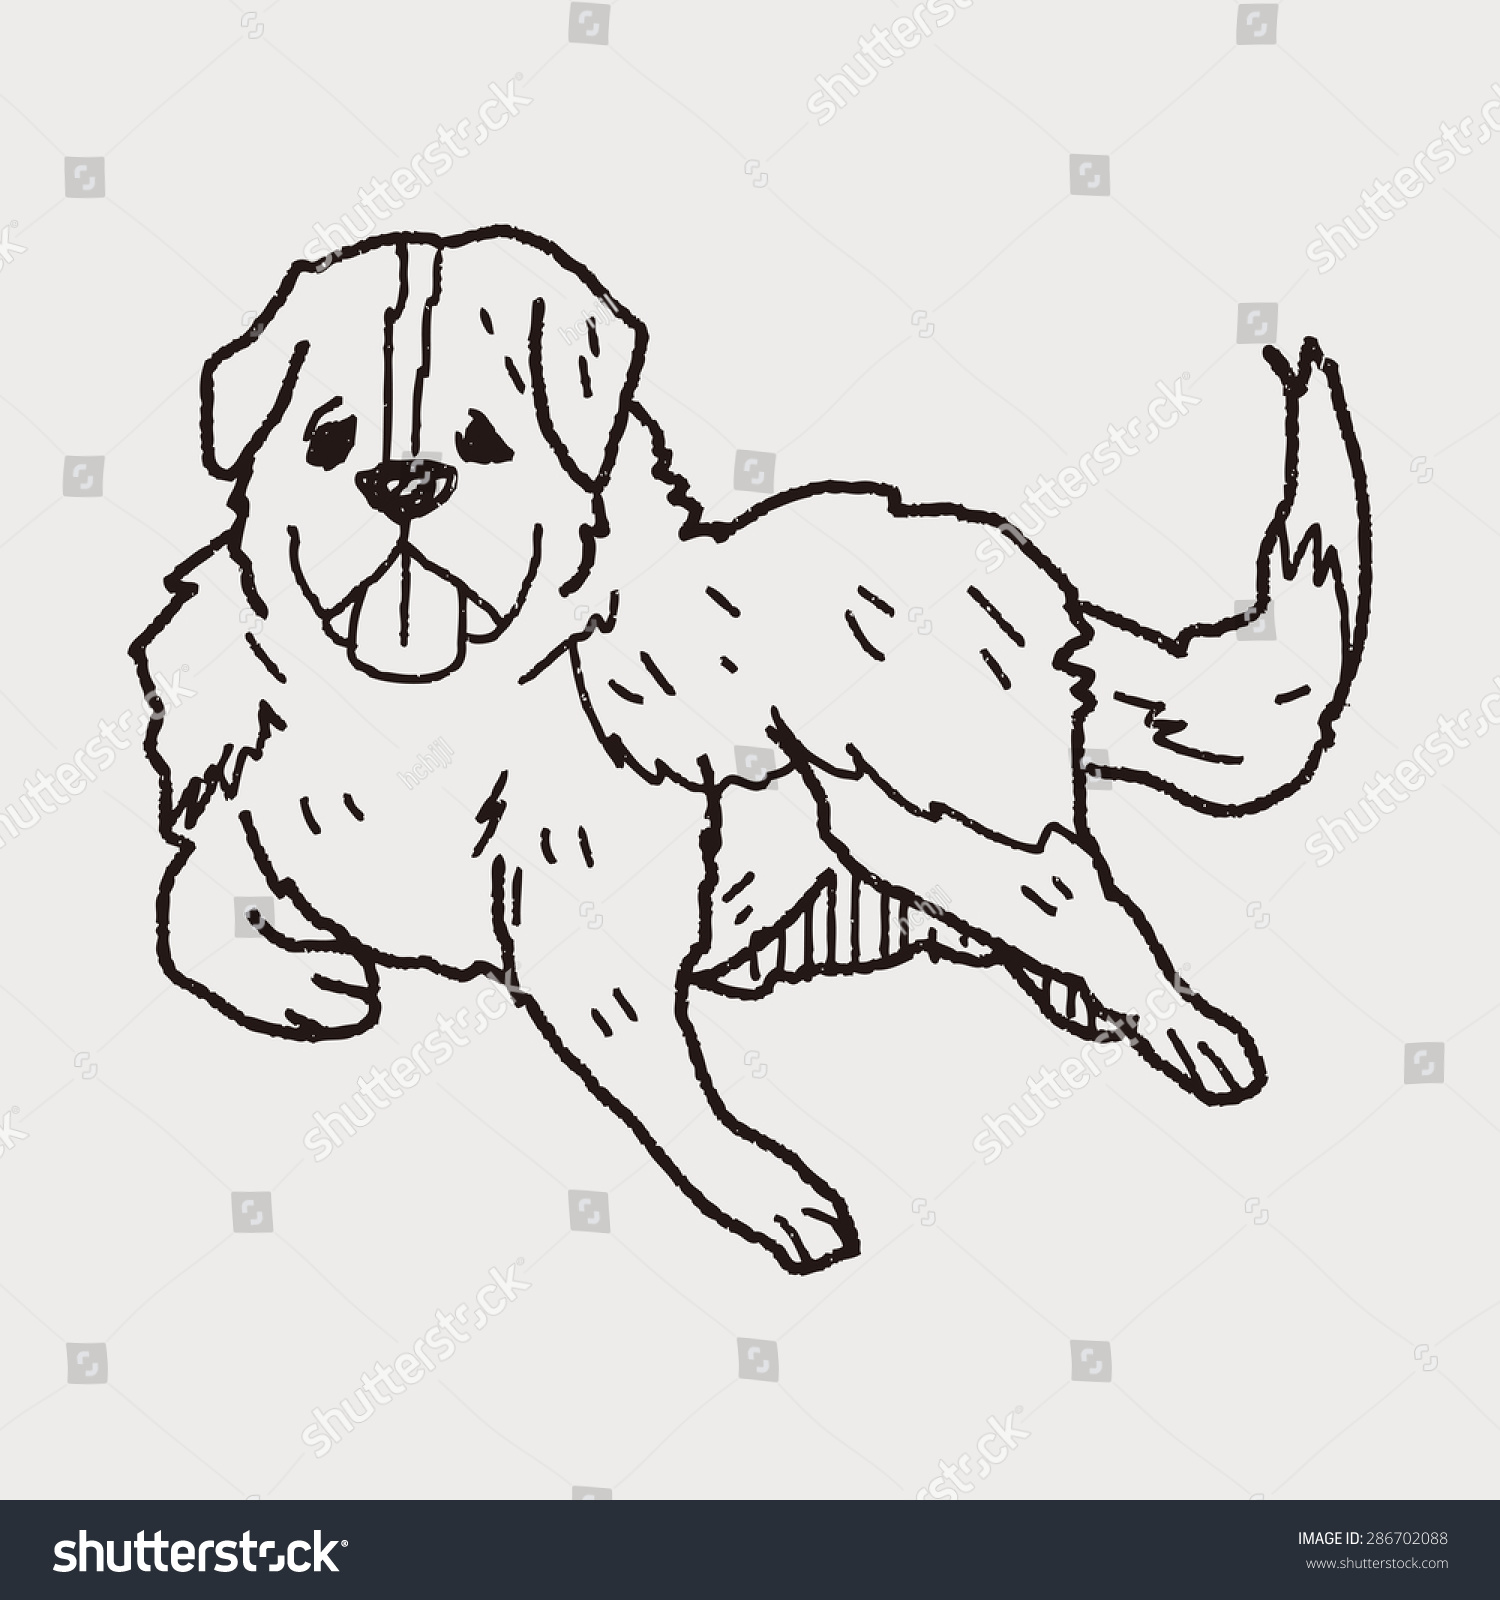 Cartoon dog stock photos images amp pictures shutterstock - Dog Doodle